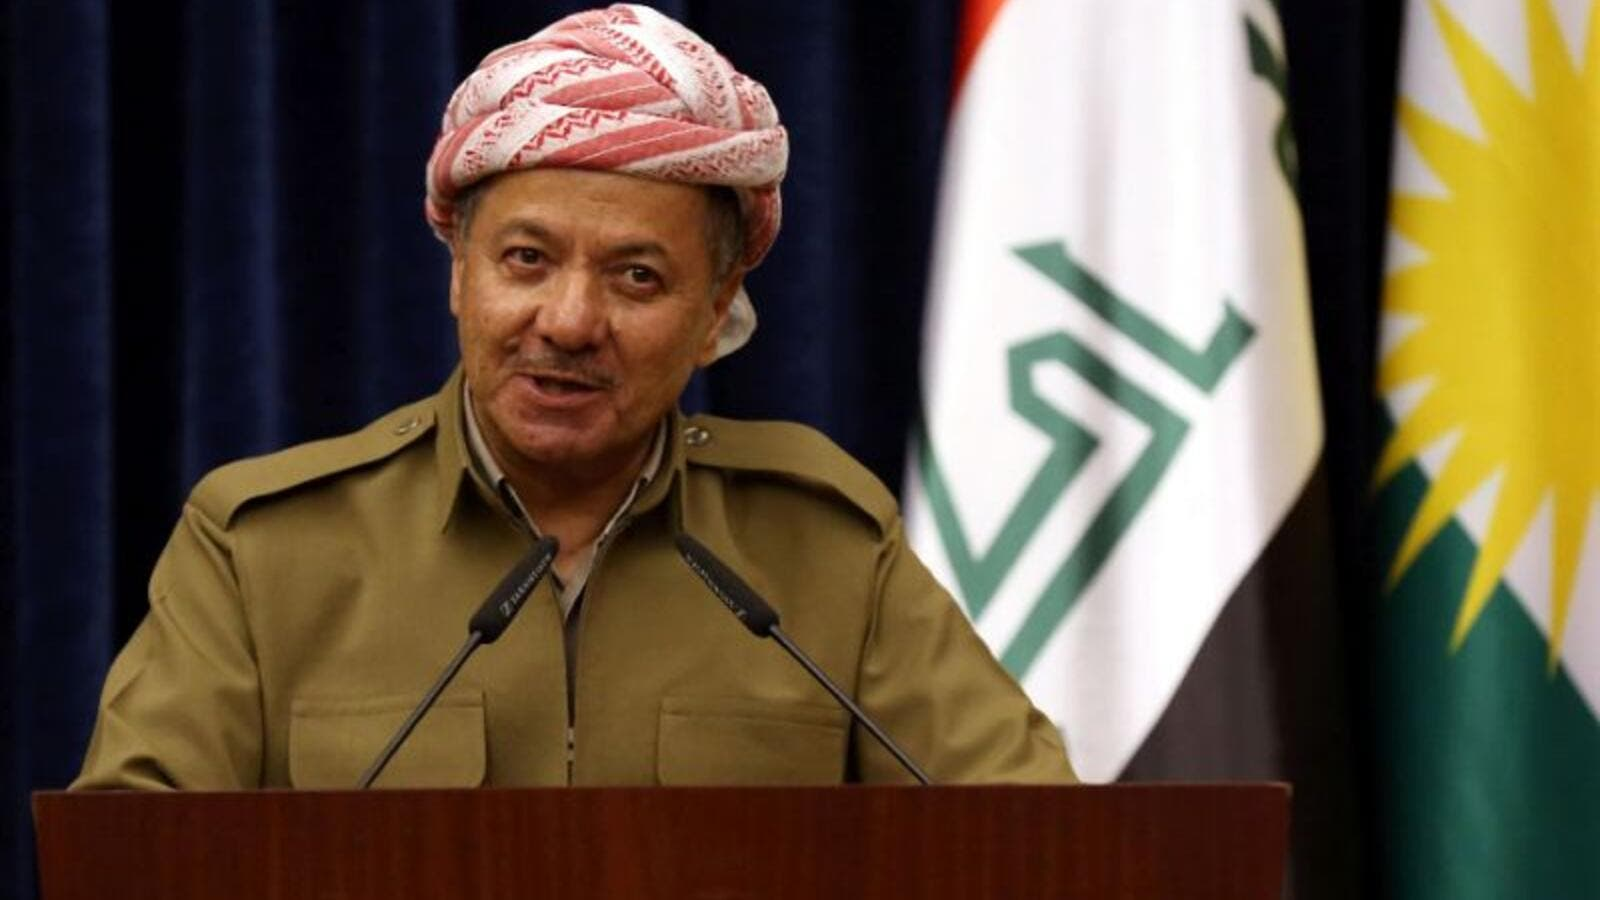 President of Iraq's autonomous Kurdish region speaks in Erbil on January 11, 2015 (AFP Photo/Safin Hamed)